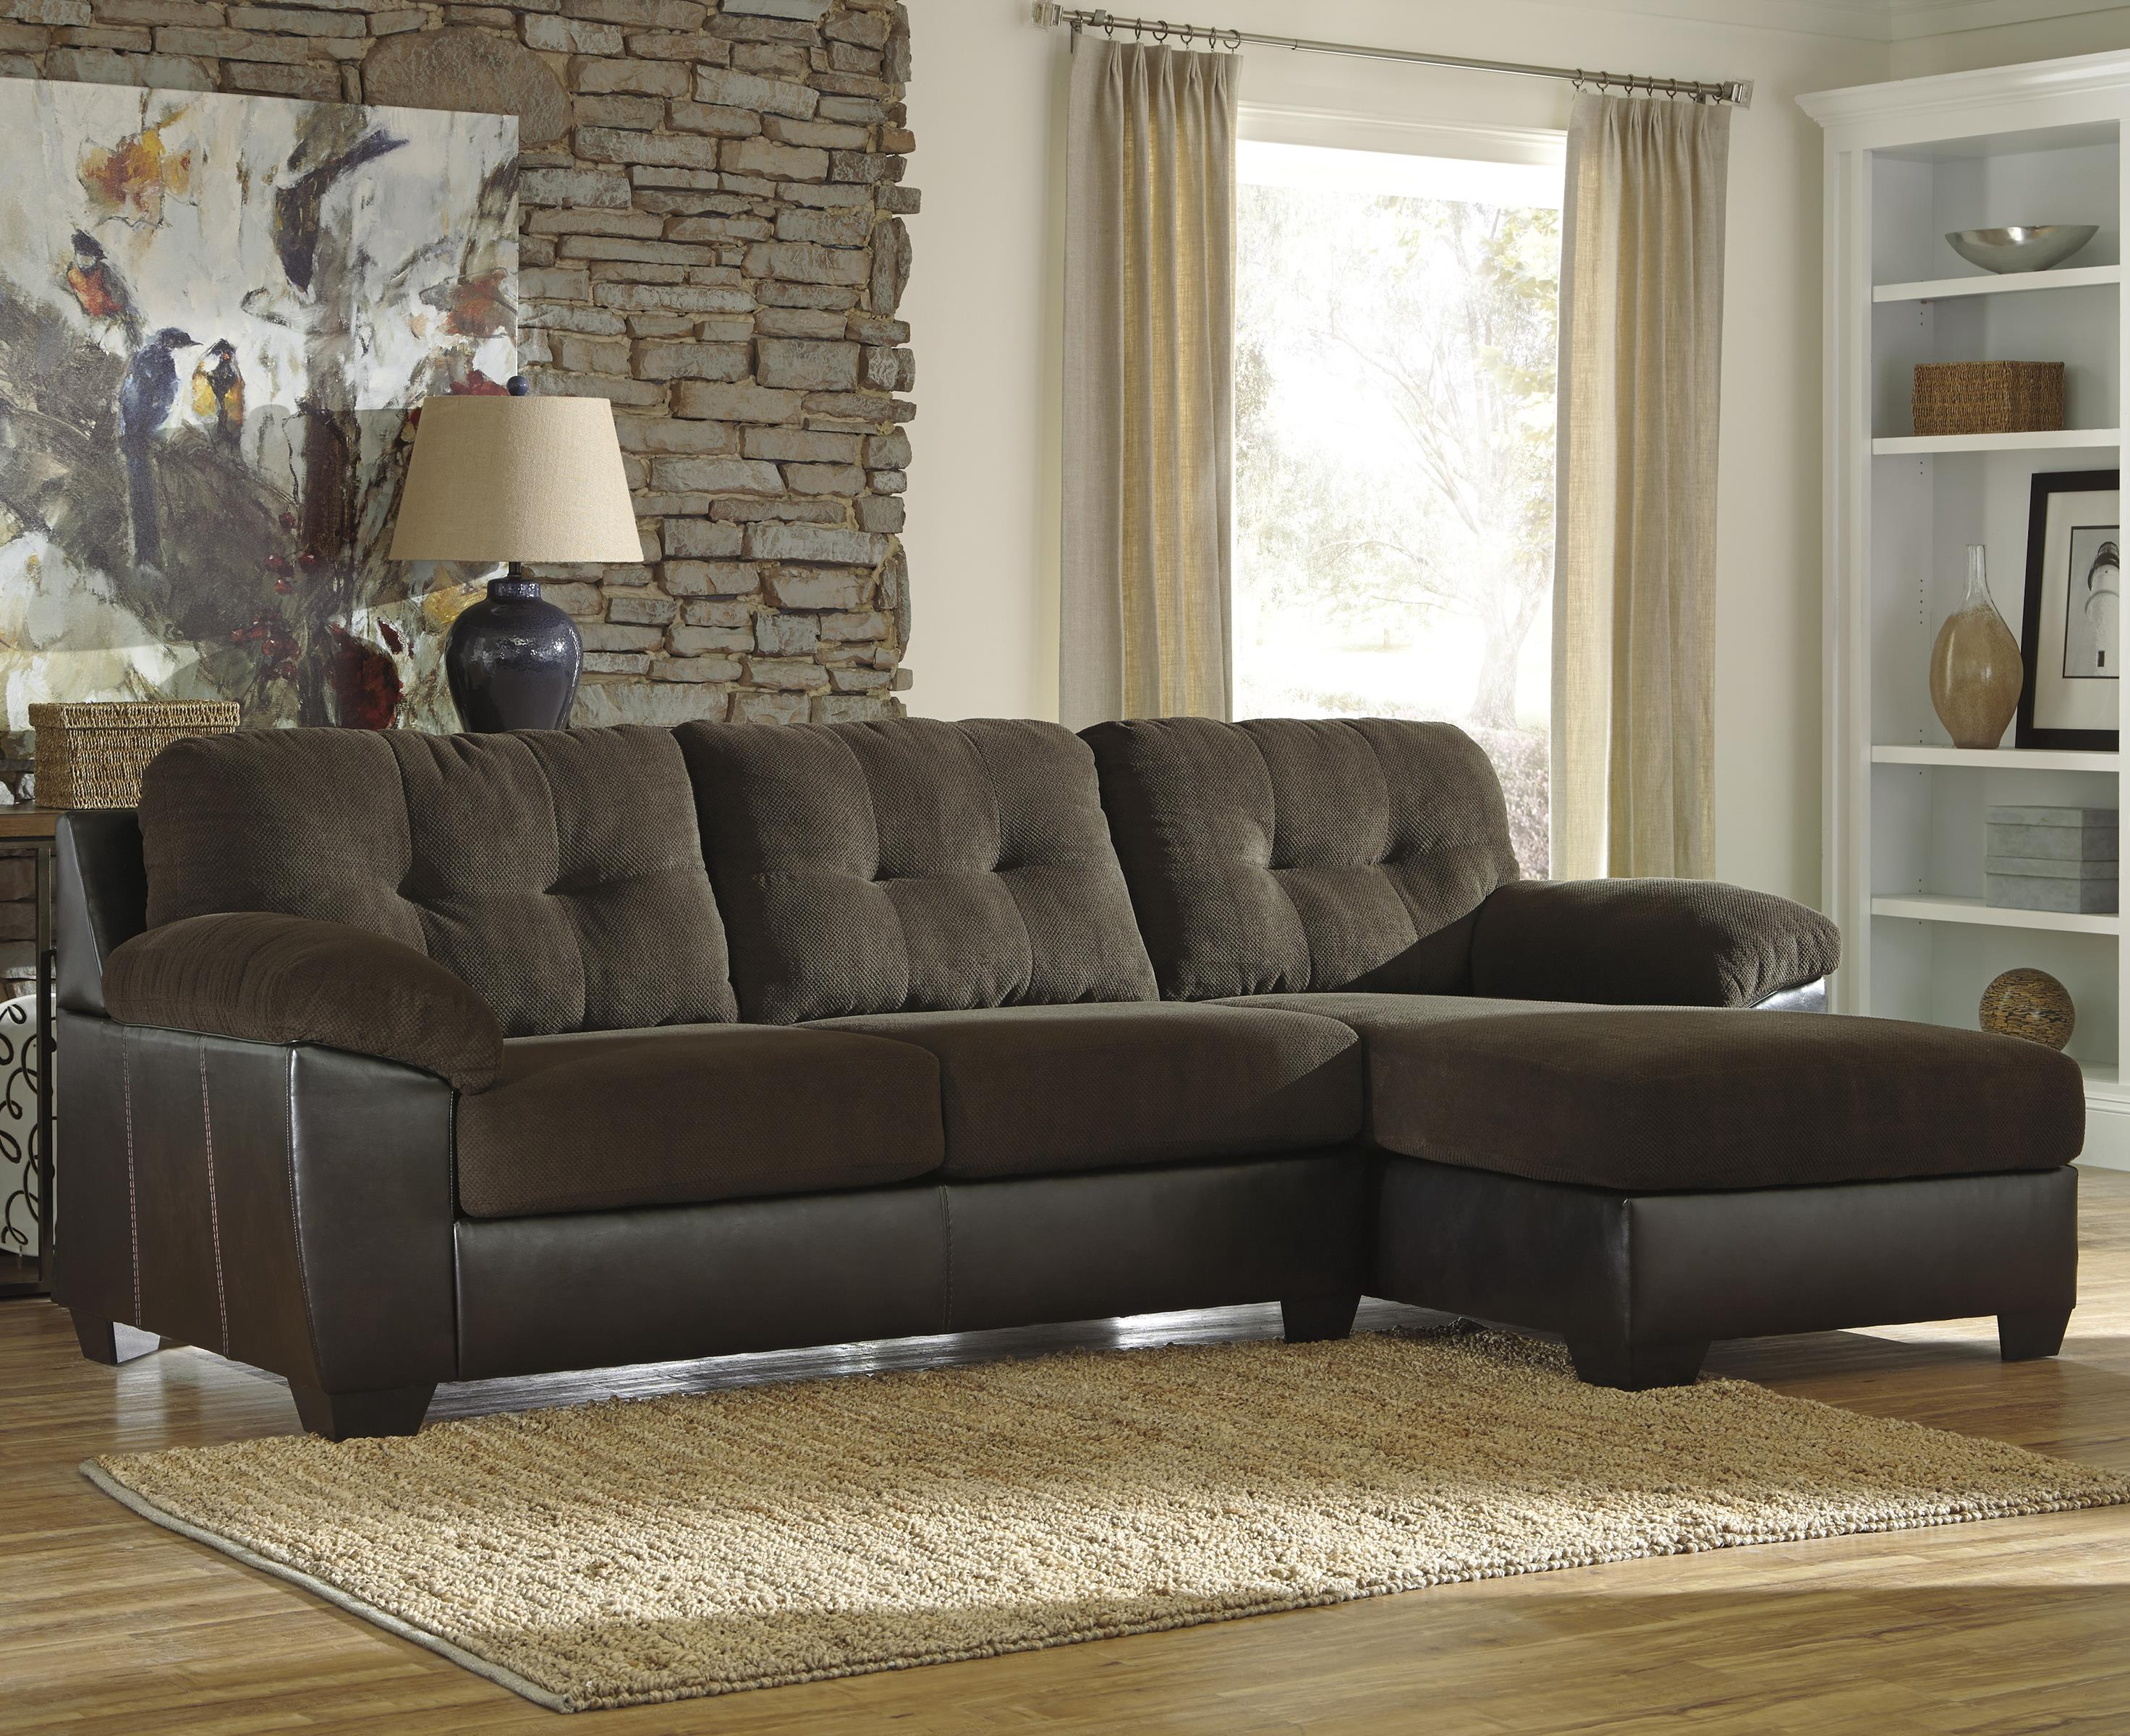 Benchcraft Vanleer 2-Piece Sectional with Right Chaise - Item Number: 1590066+17